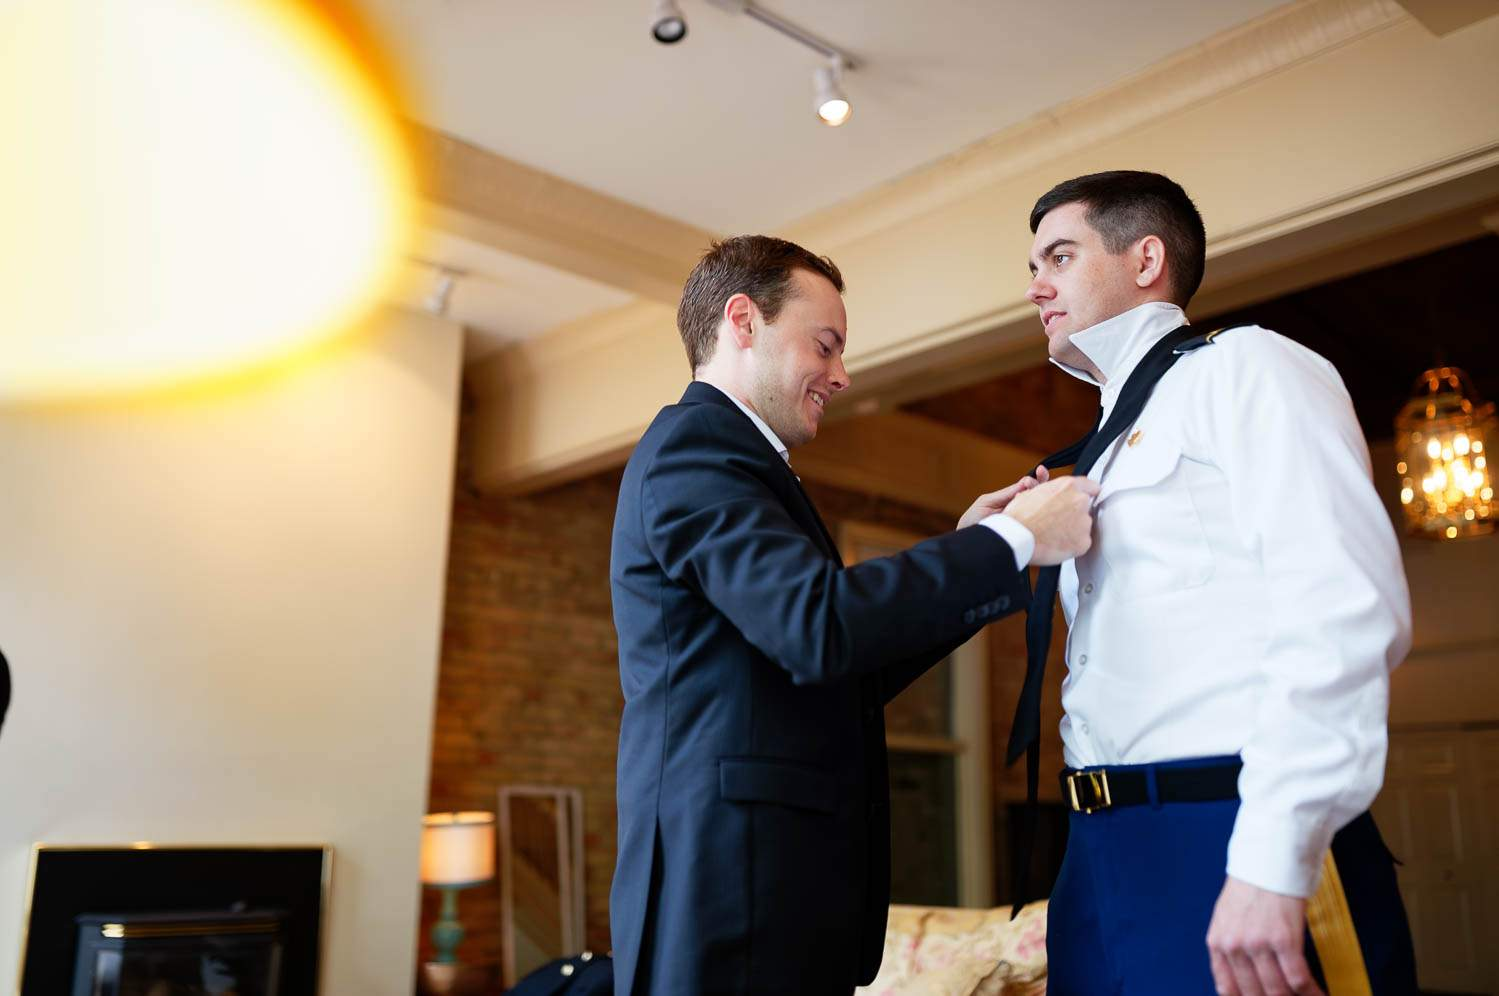 the best friend helping the groom